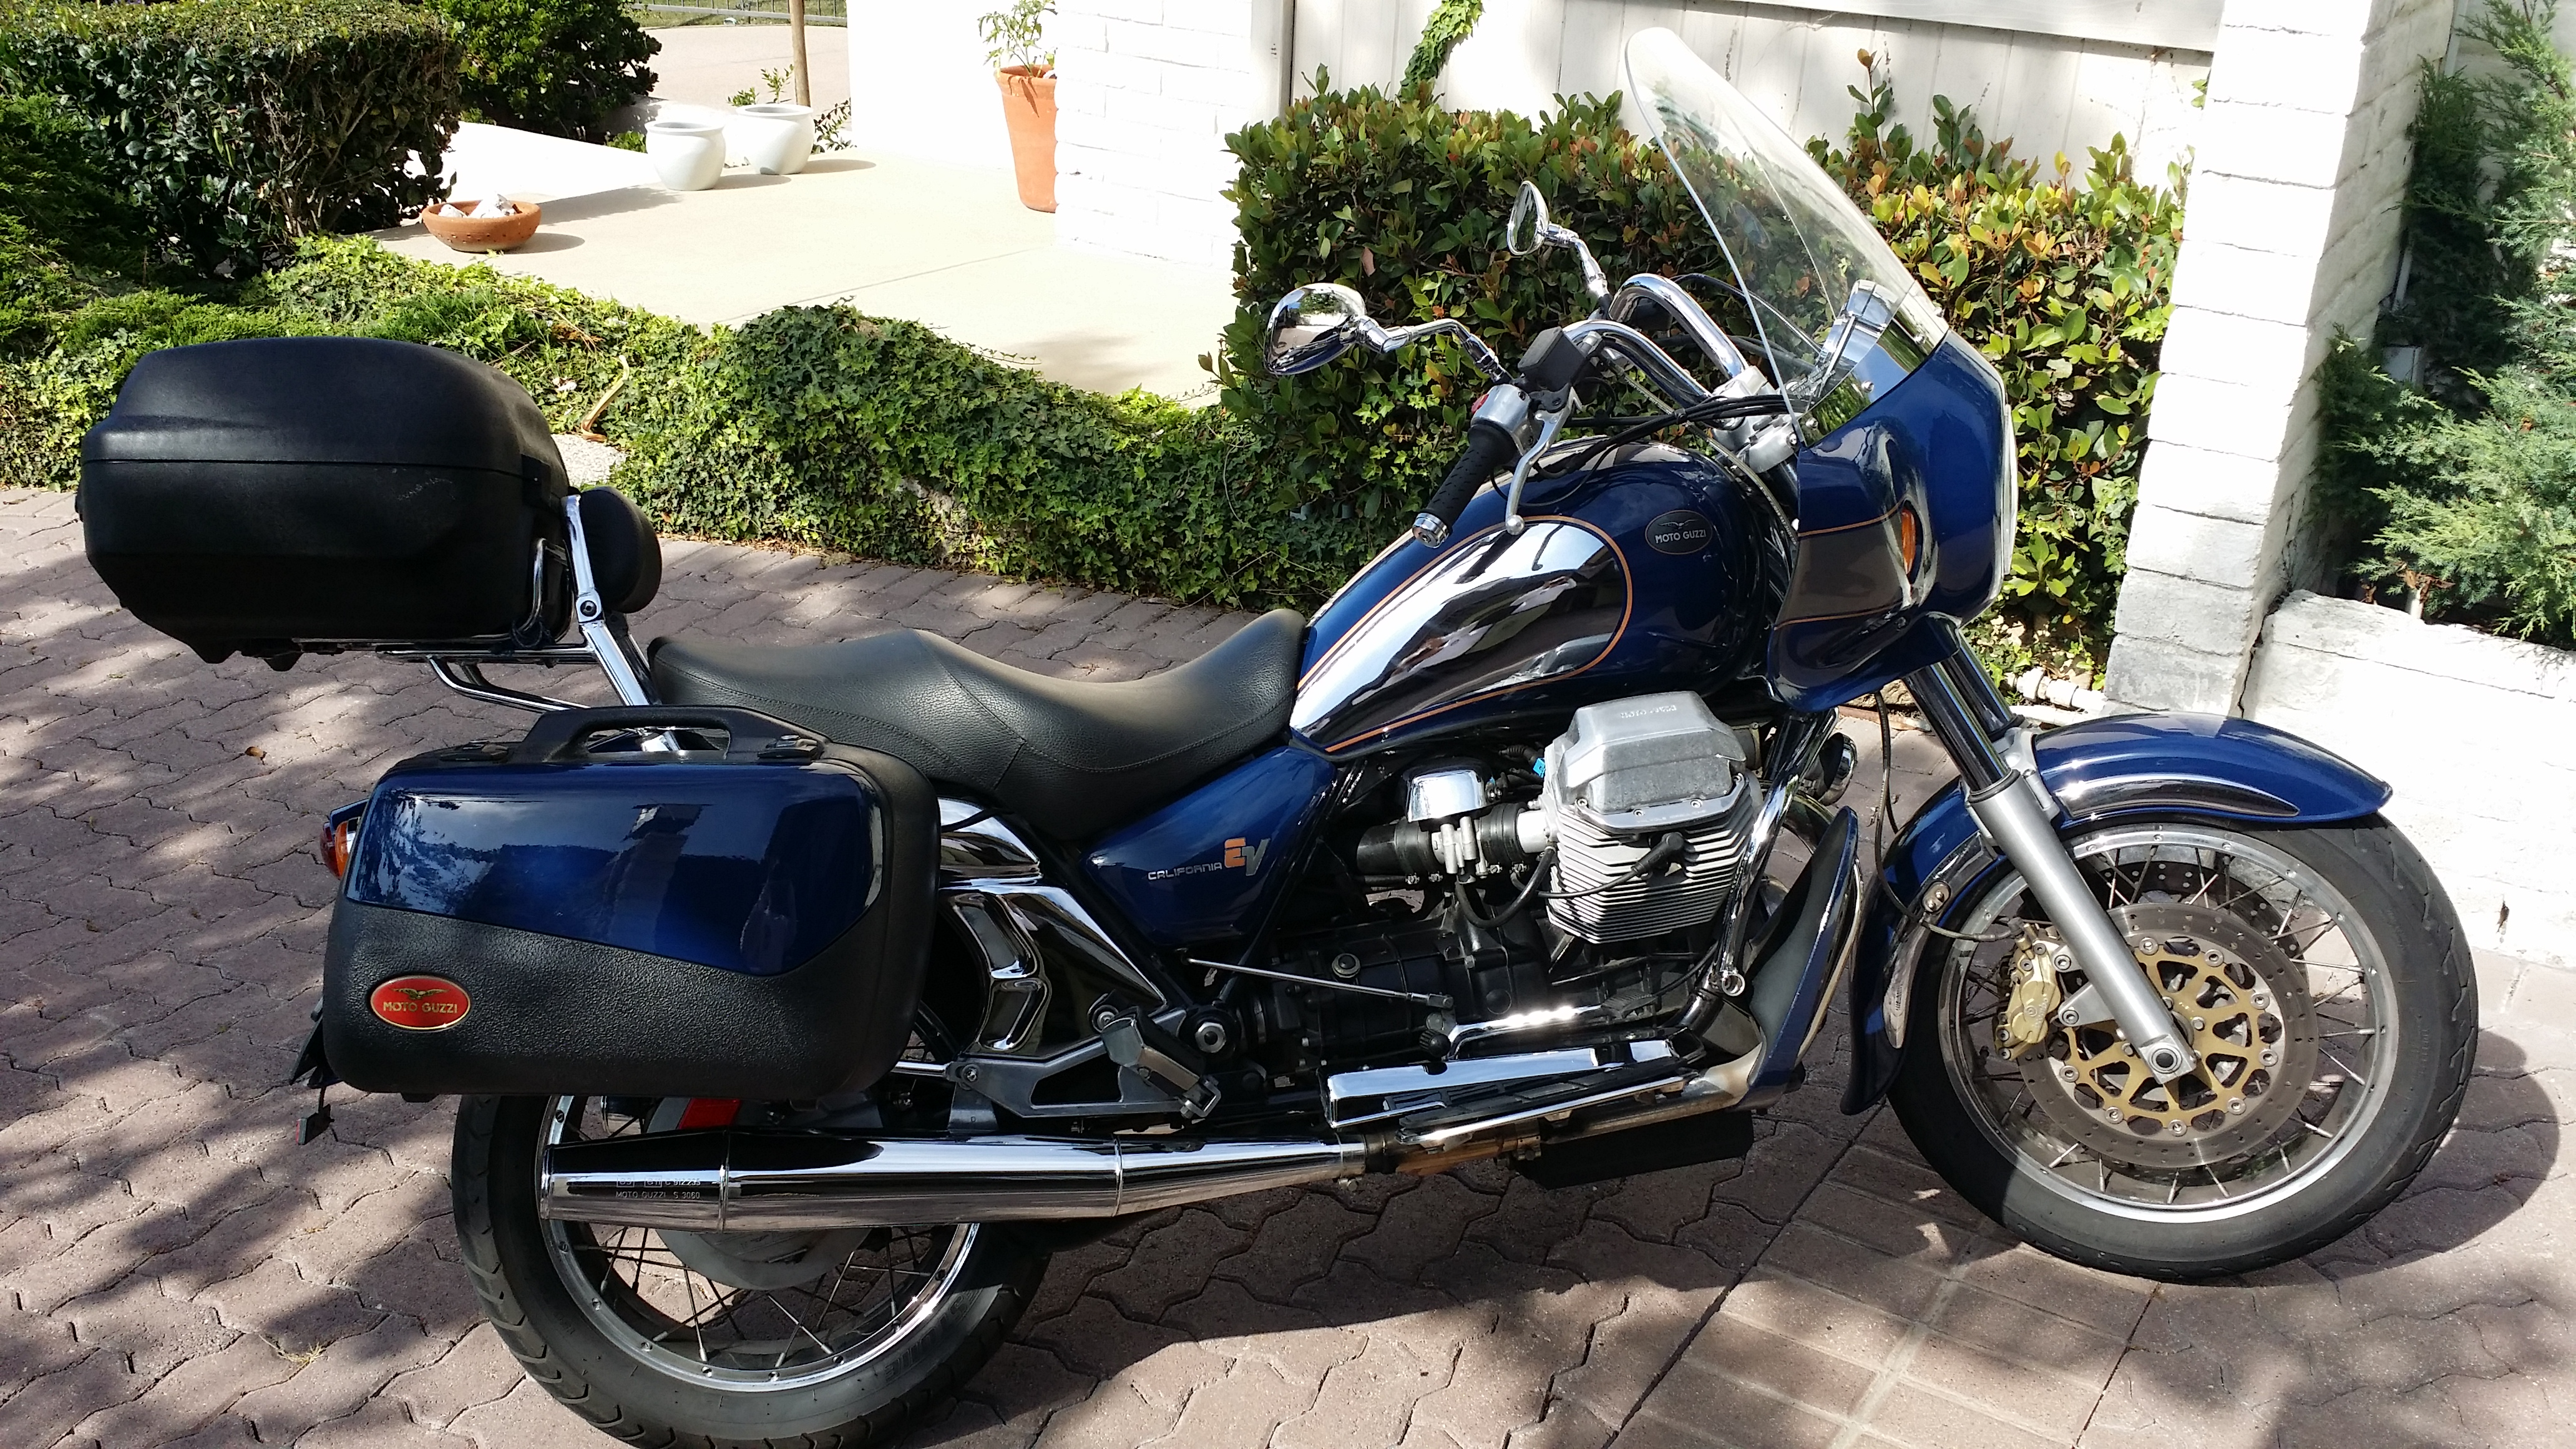 Moto Guzzi California 1100 i 1997 images #108849